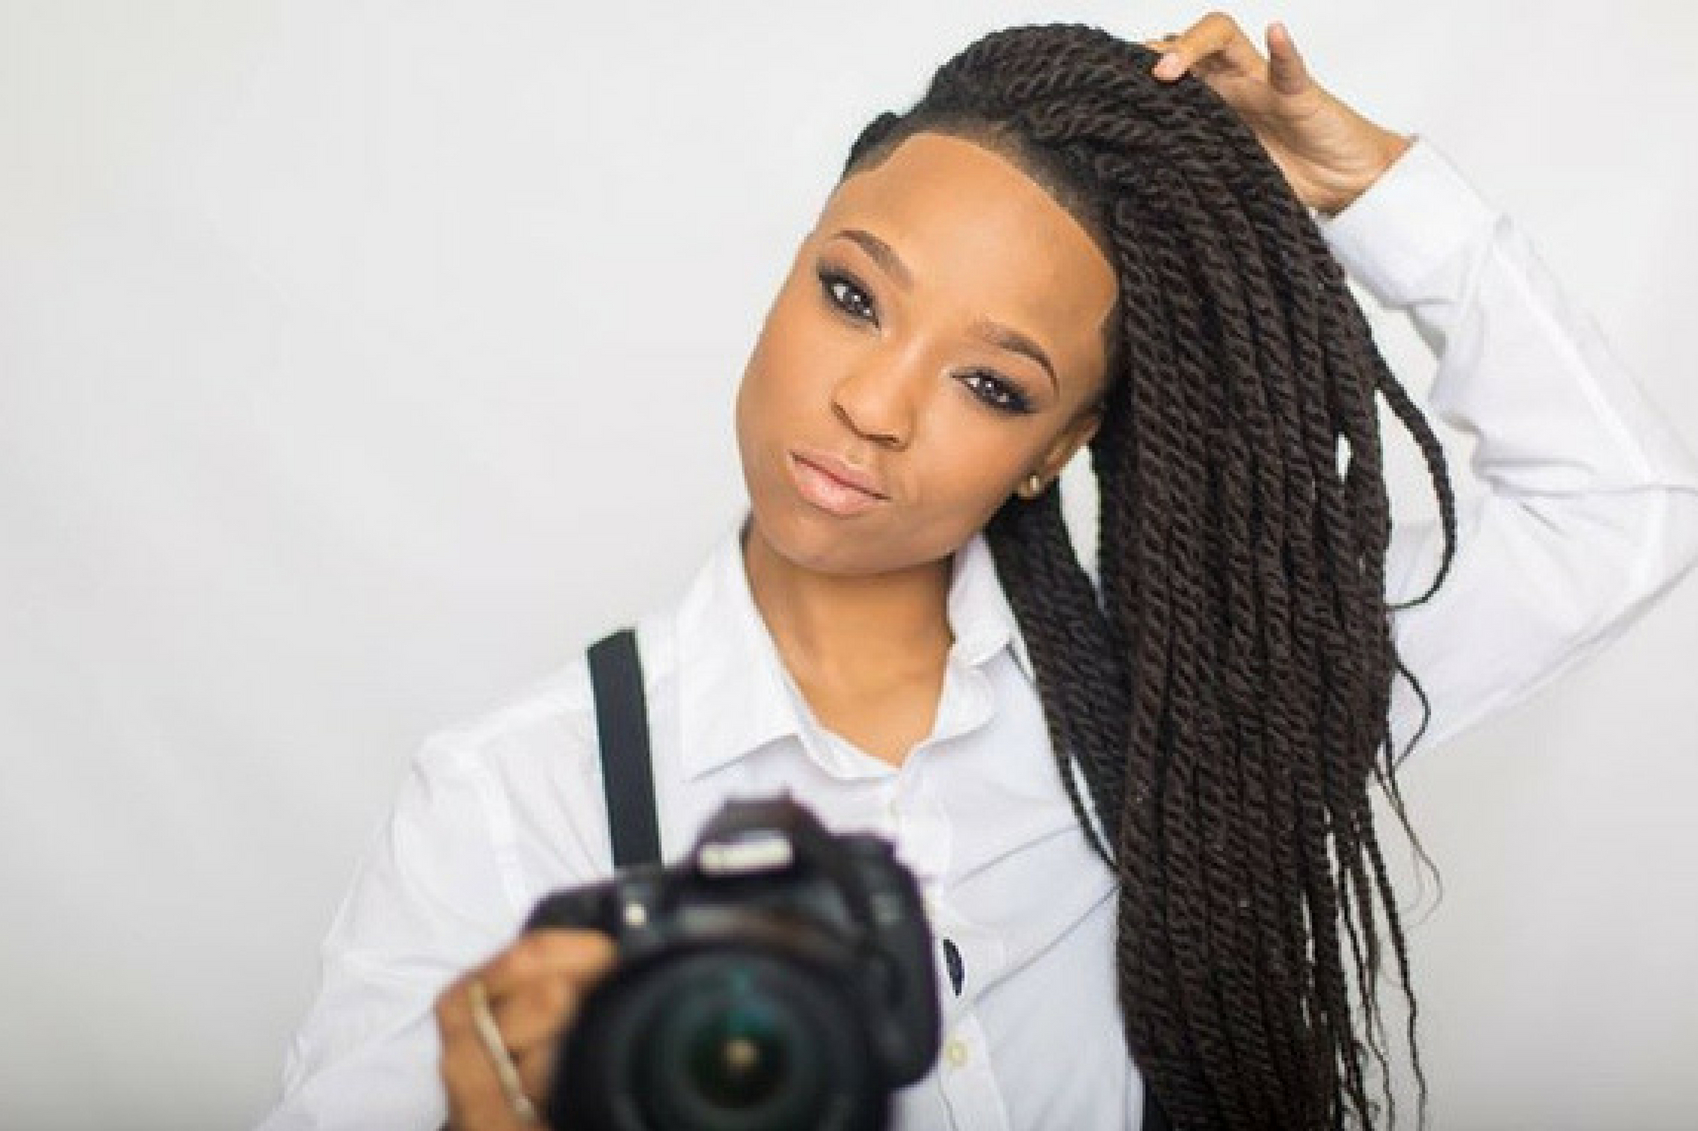 """Nneka Onuorah is a producer, director and activists whose work has shed light on the plights and triumphs of life as a black lesbian woman. Her documentary, """"The Same Difference"""" won the GLAAD Best Documentary award in 2017. Her most recent project is a documentary for Netflix entitled """"My House"""" which explores black vogue culture."""